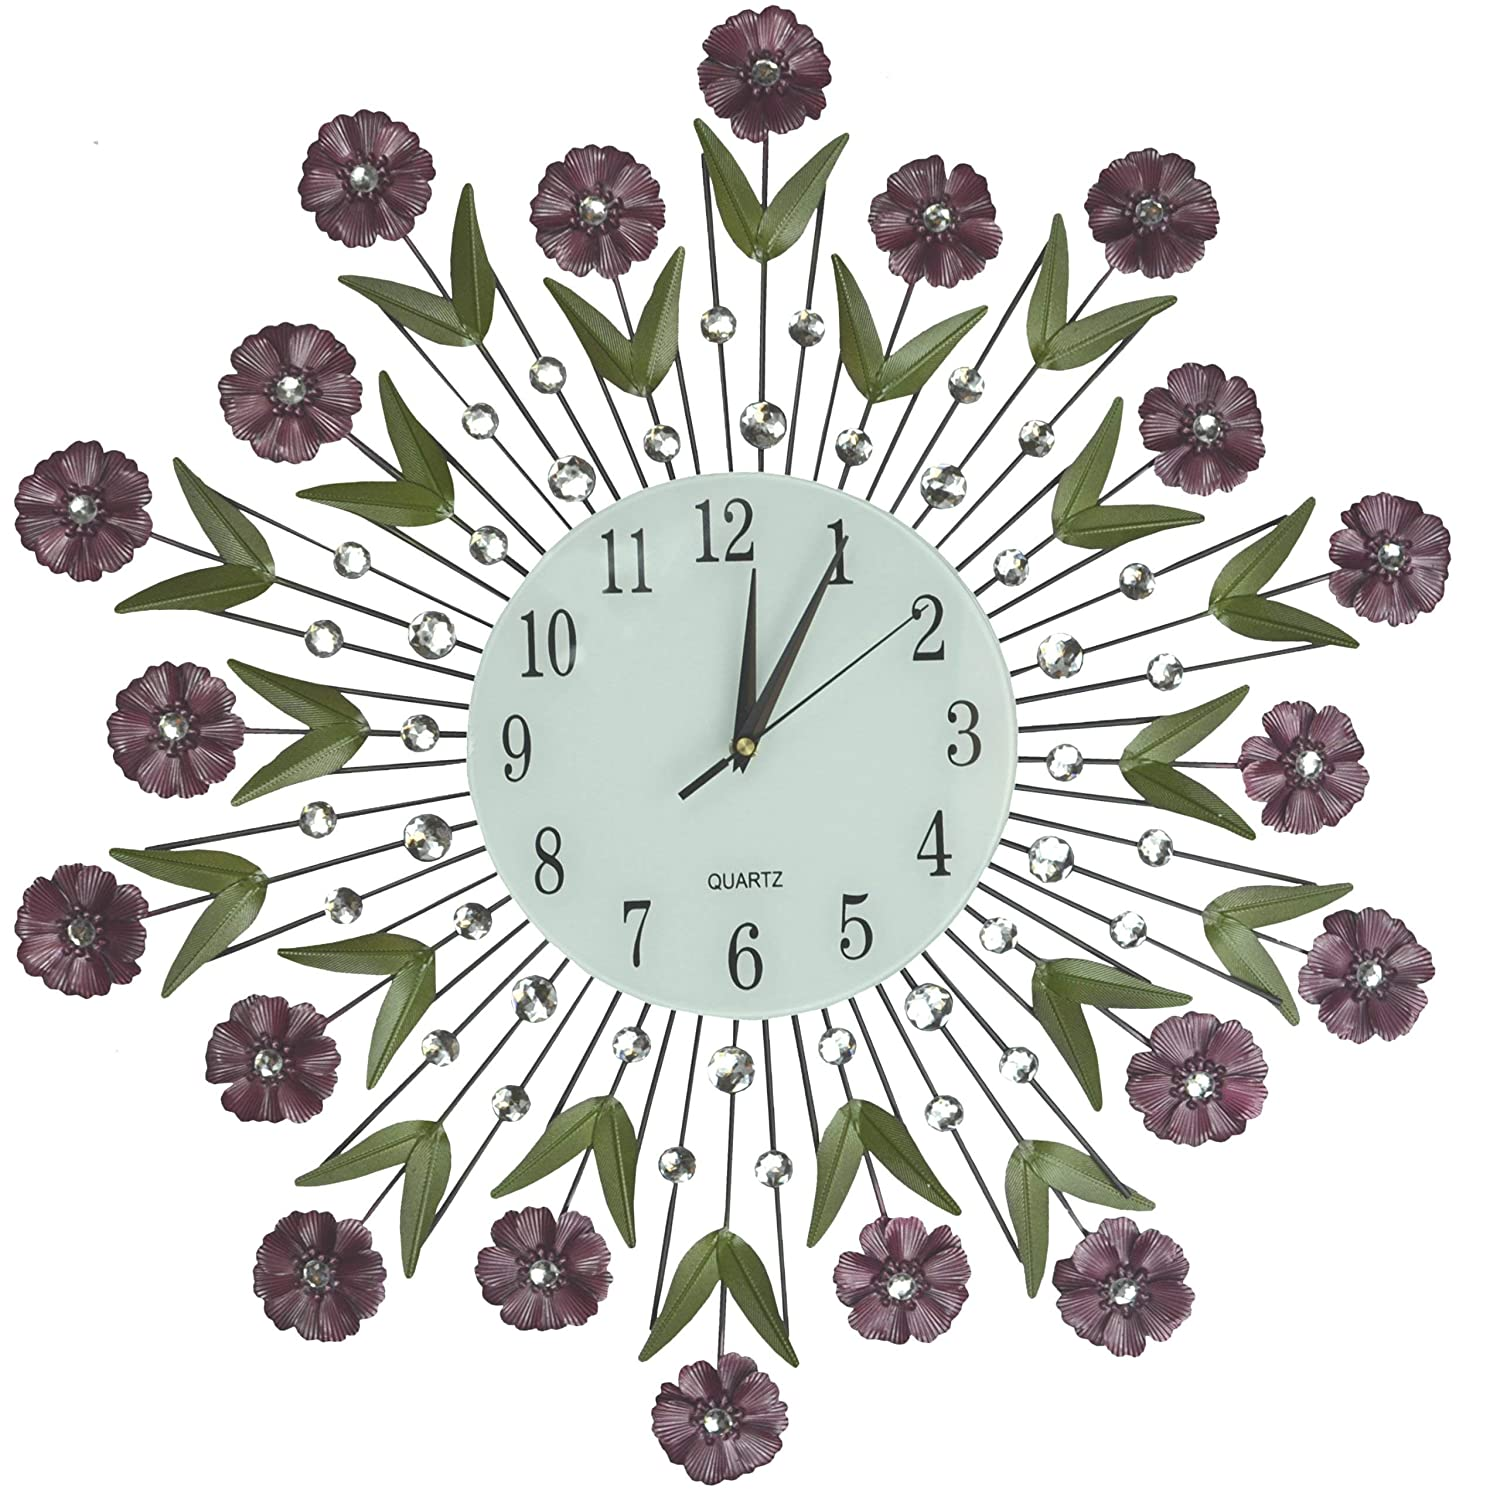 """LuLu Decor, Flower Burst Wall Clock 24"""", White Glass Dial with Arabic Numerals 8.5"""", Decorative Metal Wall Clock for Living Room, Bedroom, Office Space"""